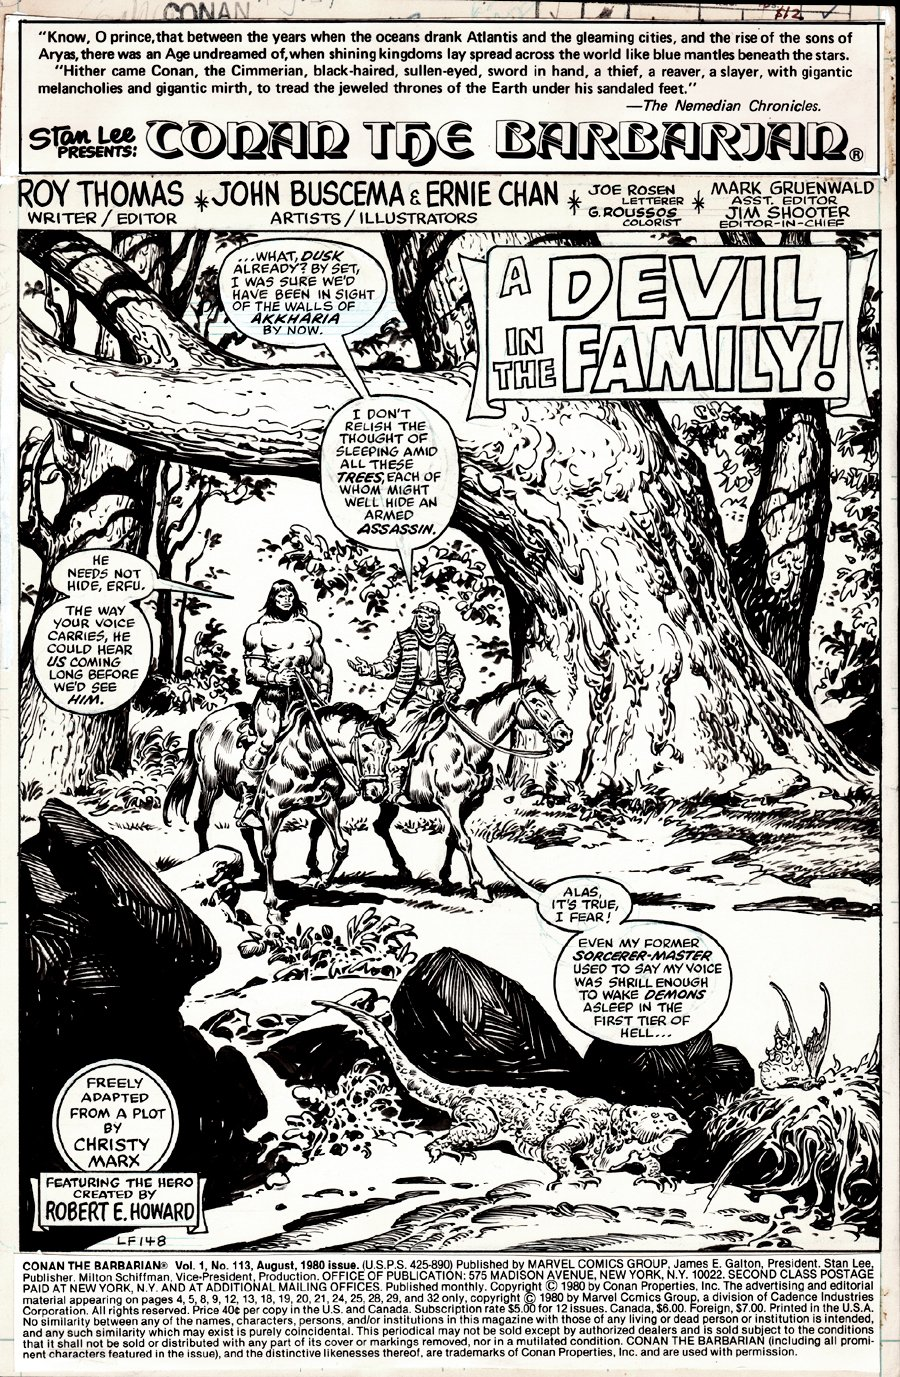 Conan the Barbarian #113 p 1 (CONAN SPLASH!) 1980